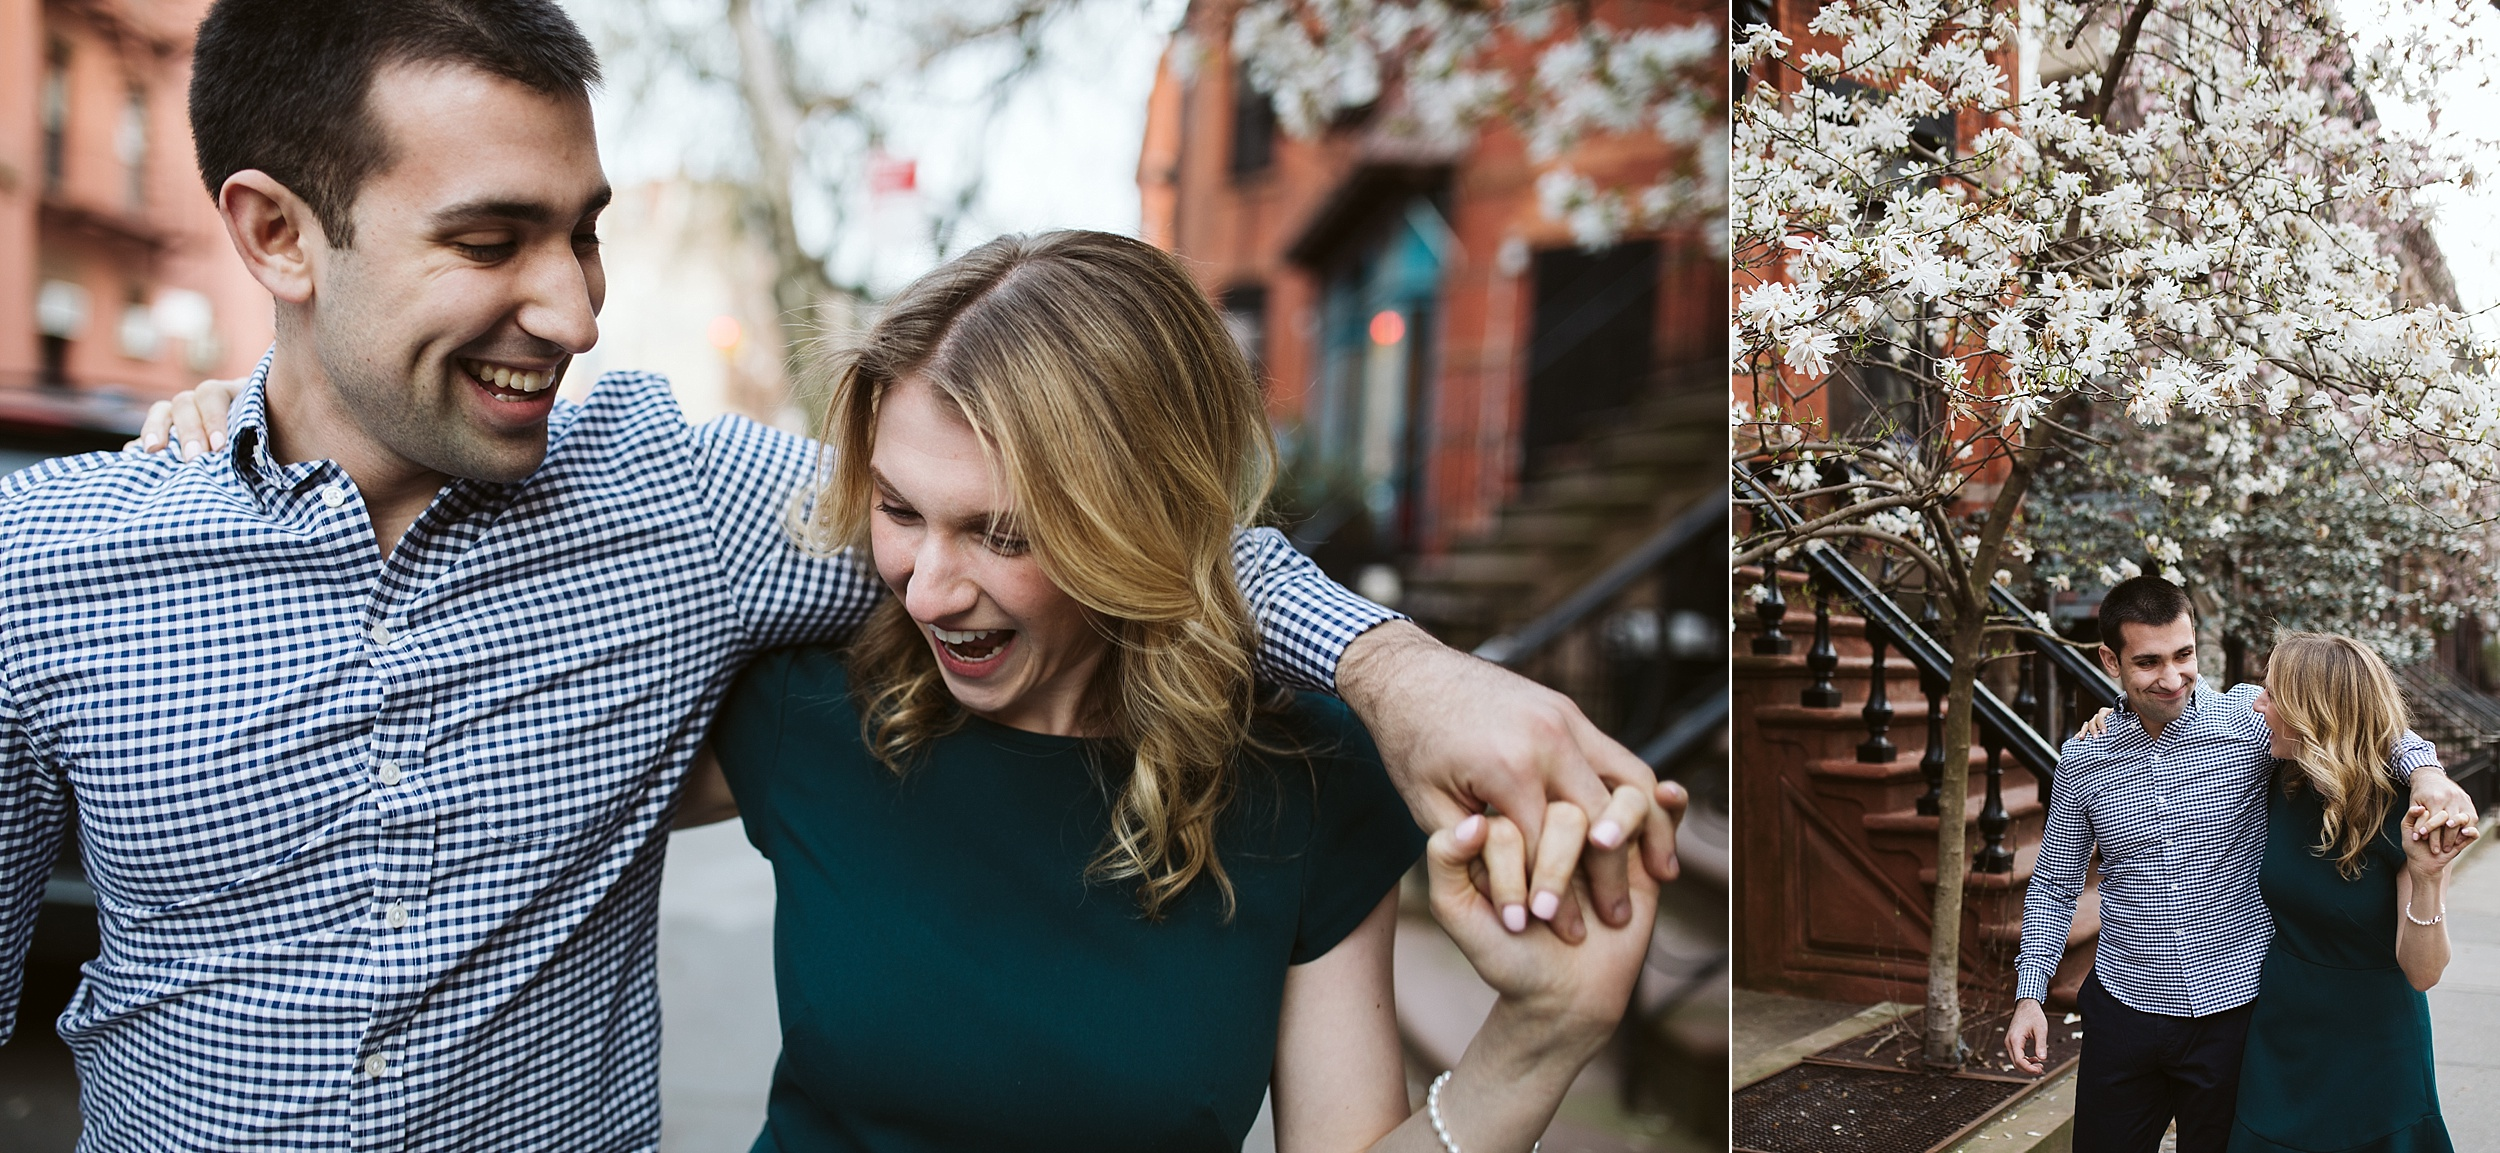 Allison Sullivan - Park Slope + Prospect Park Brooklyn Engagement Session 0002.JPG